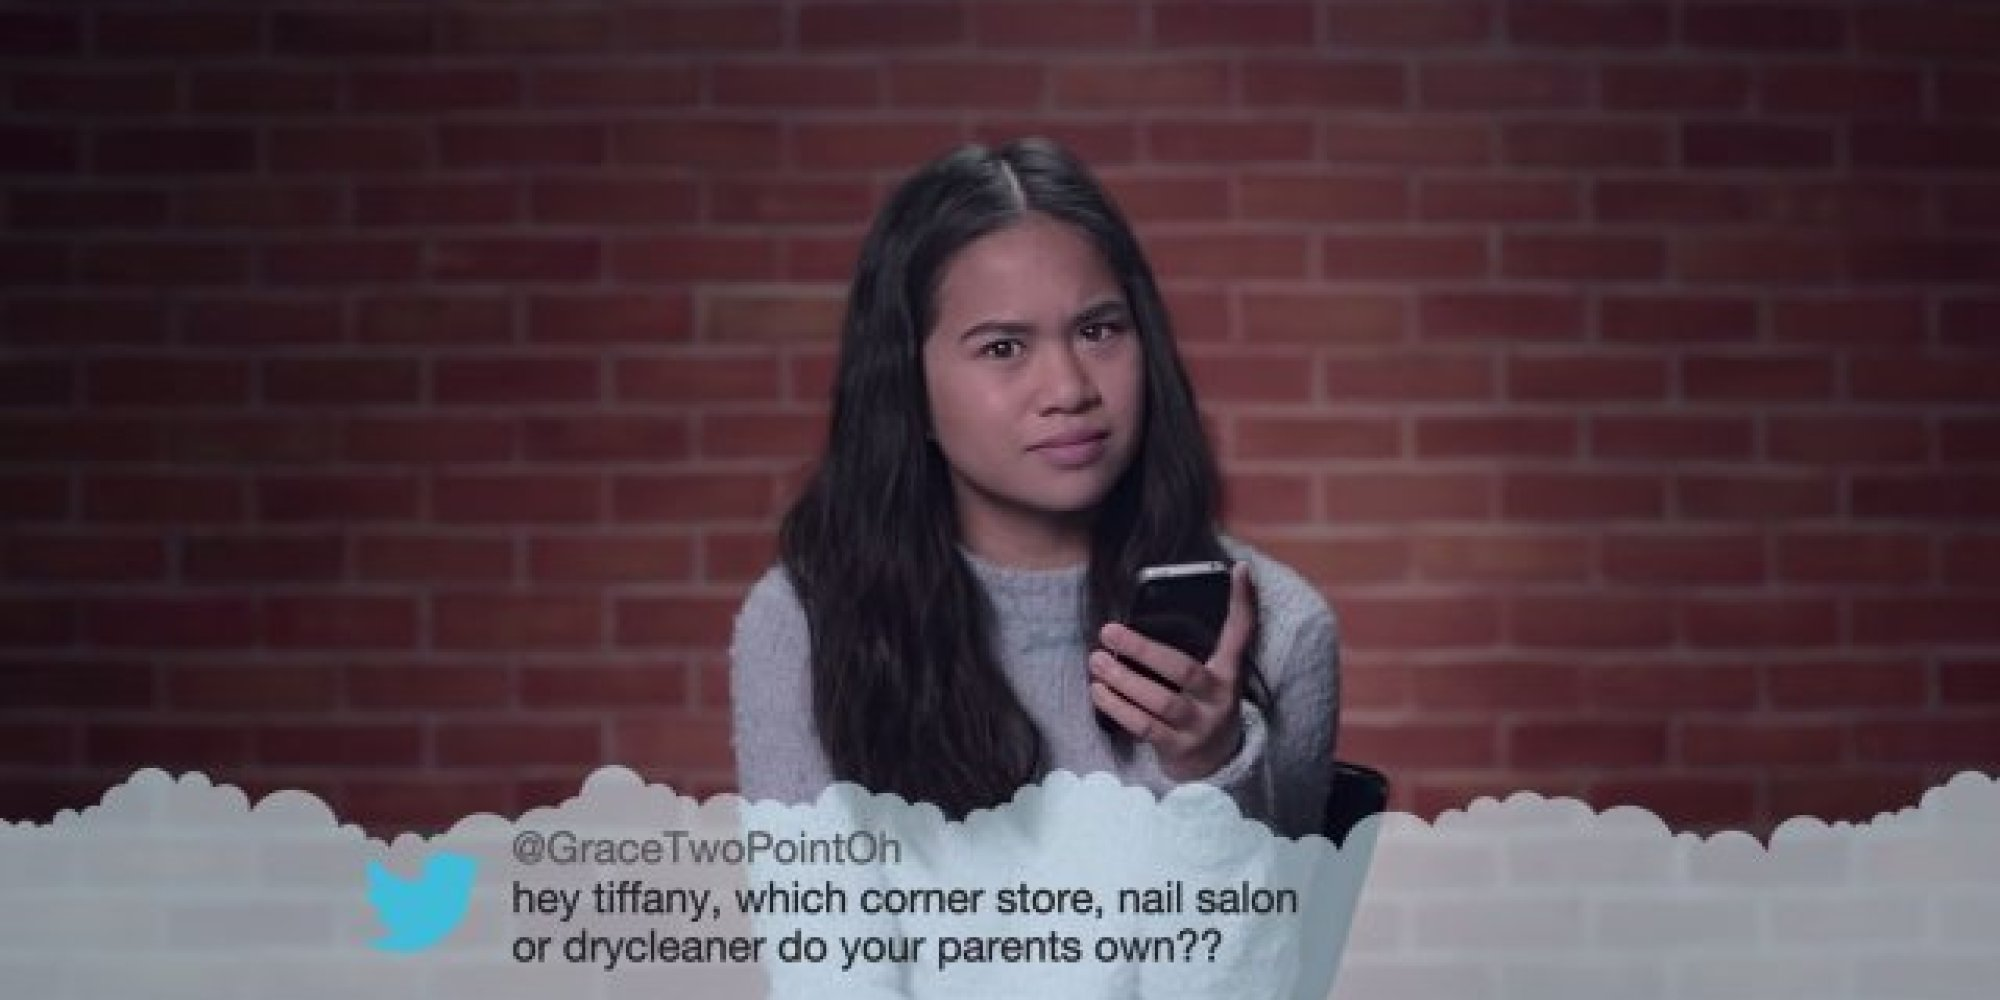 Watch These Kids Read Mean Tweets About Themselves To Shed Light On Cyberbullying HuffPost